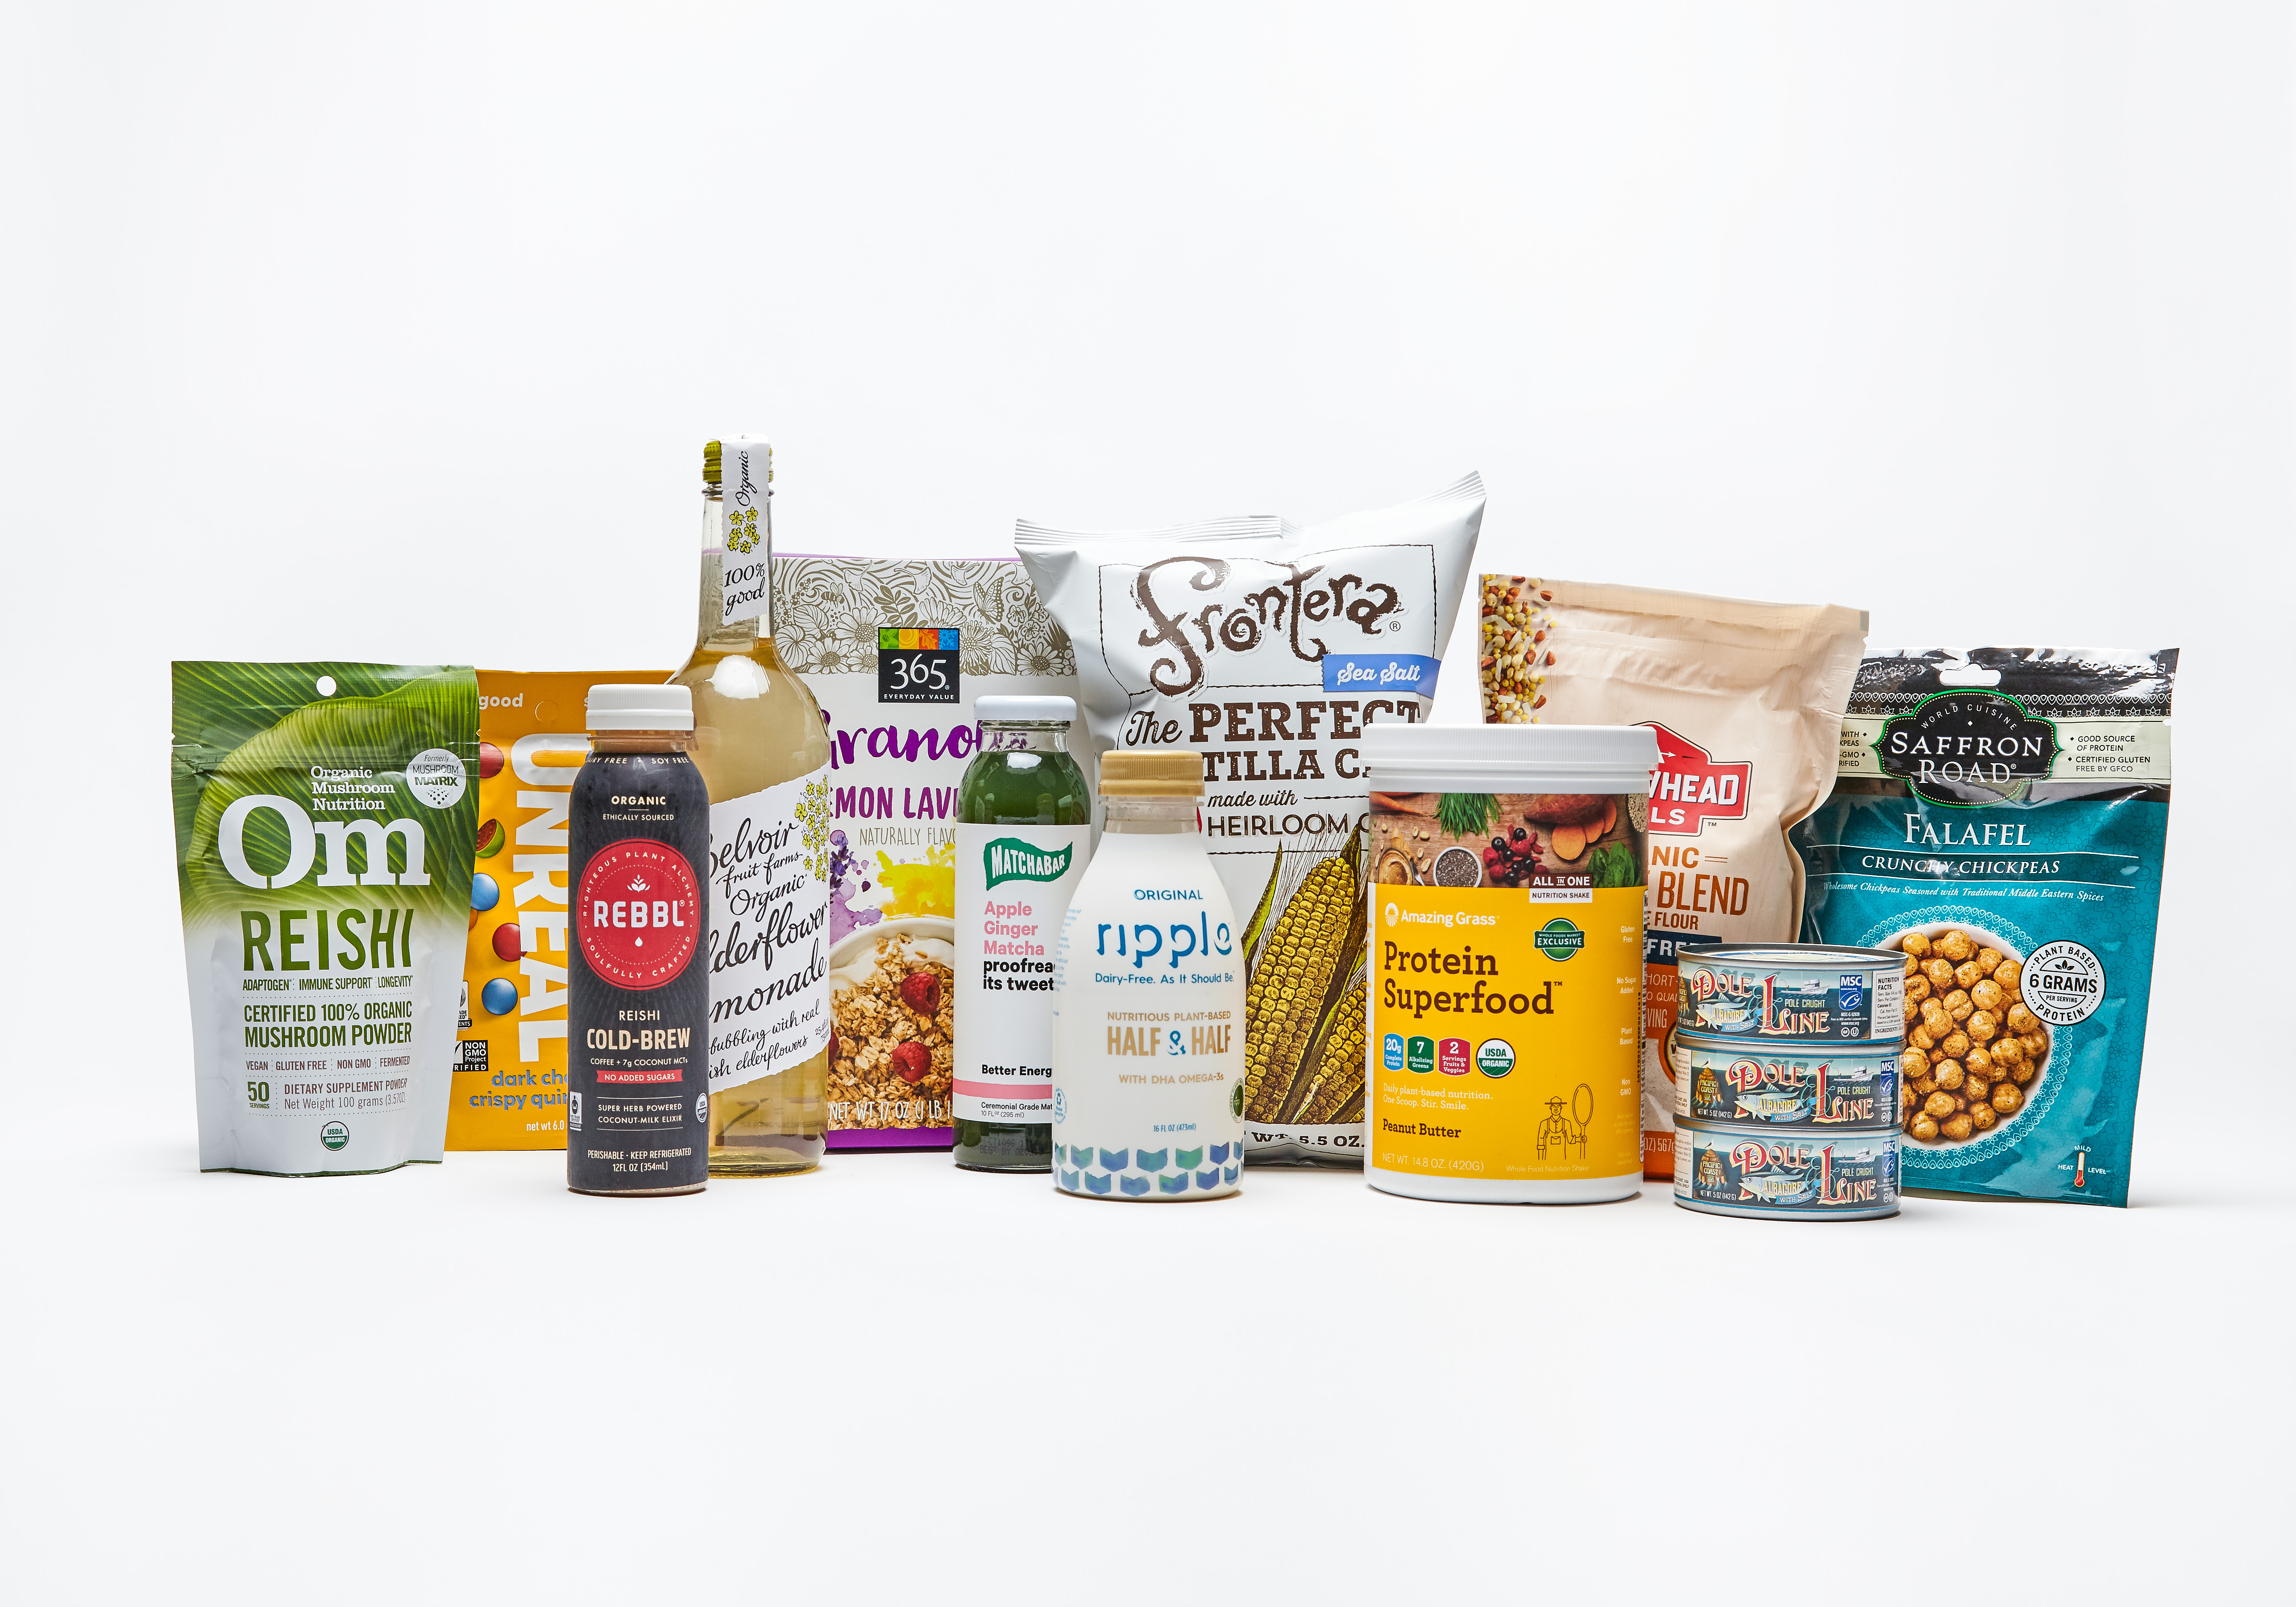 Whole Foods Market Reveals Top Food Trends for 2018 | Business Wire